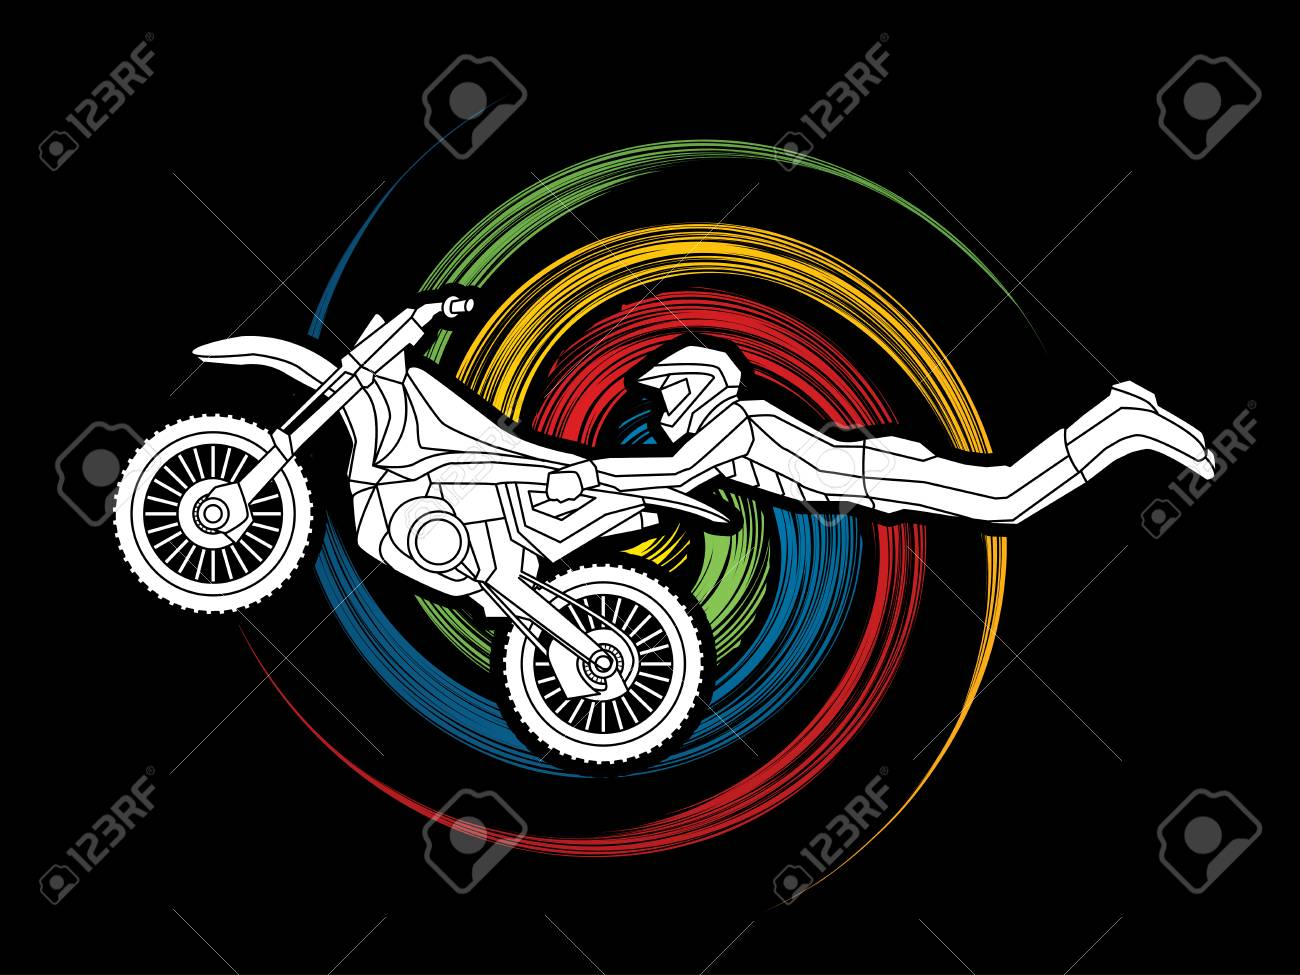 Freestyle Motocross Flying Trick Designed On Spin Wheel Background Royalty Free Cliparts Vectors And Stock Illustration Image 70272143